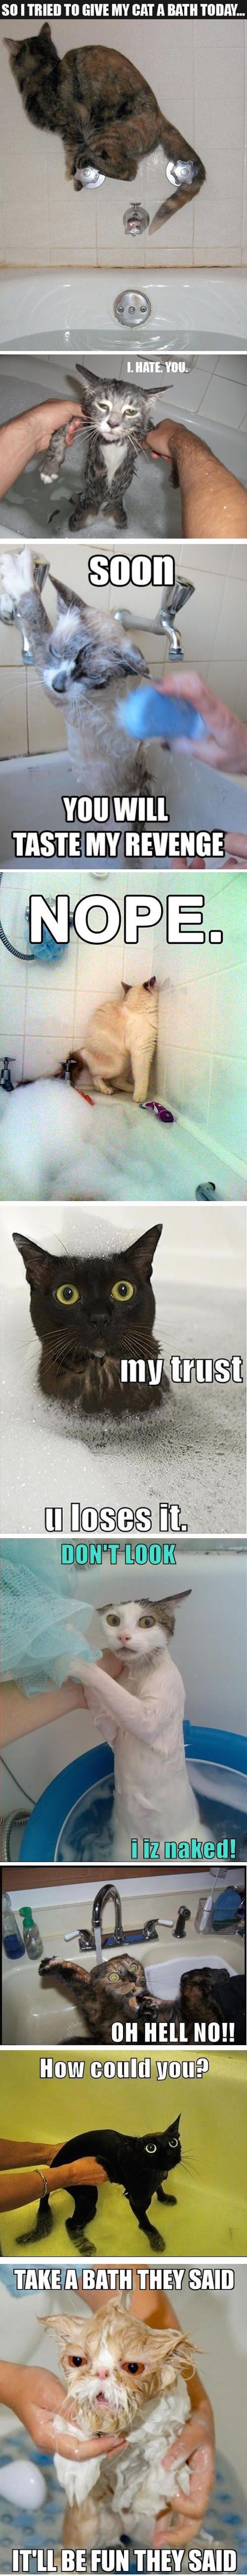 funny pictures of cats that hate baths